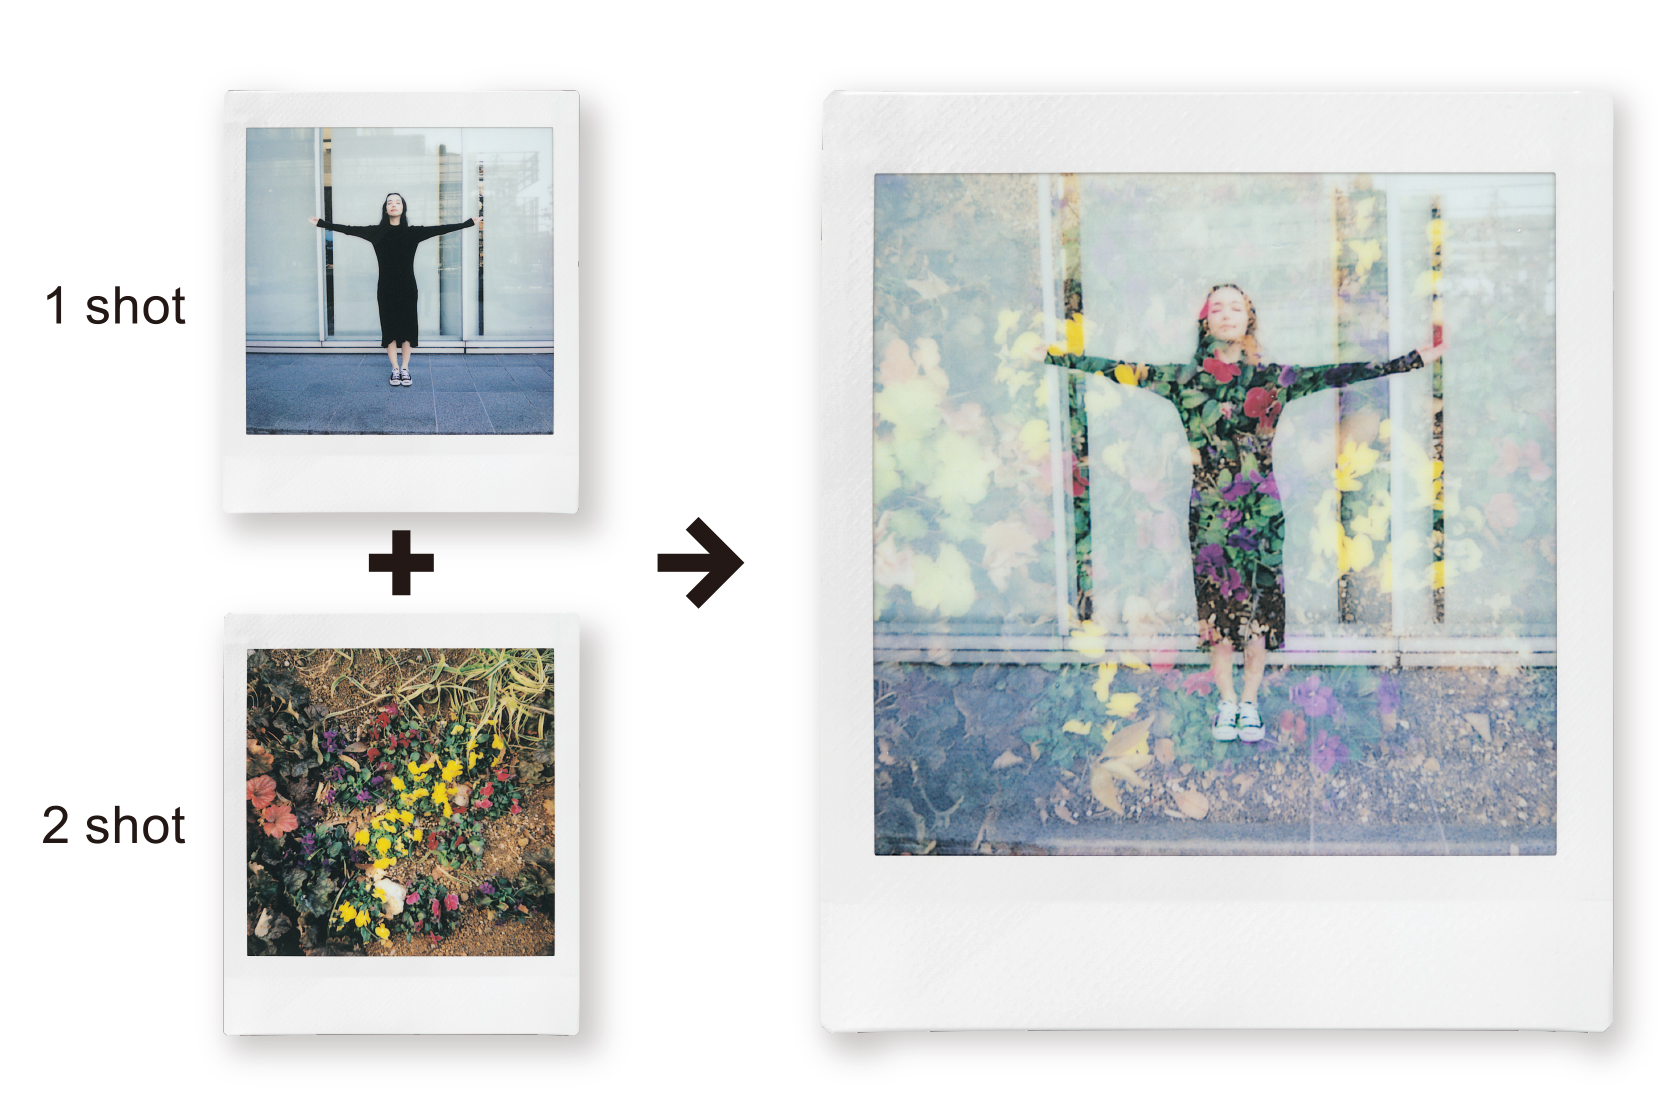 [photo] Sample photos of 2 shots merged into on showing the Double Exposure mode on the Instax SQUARE SQ6